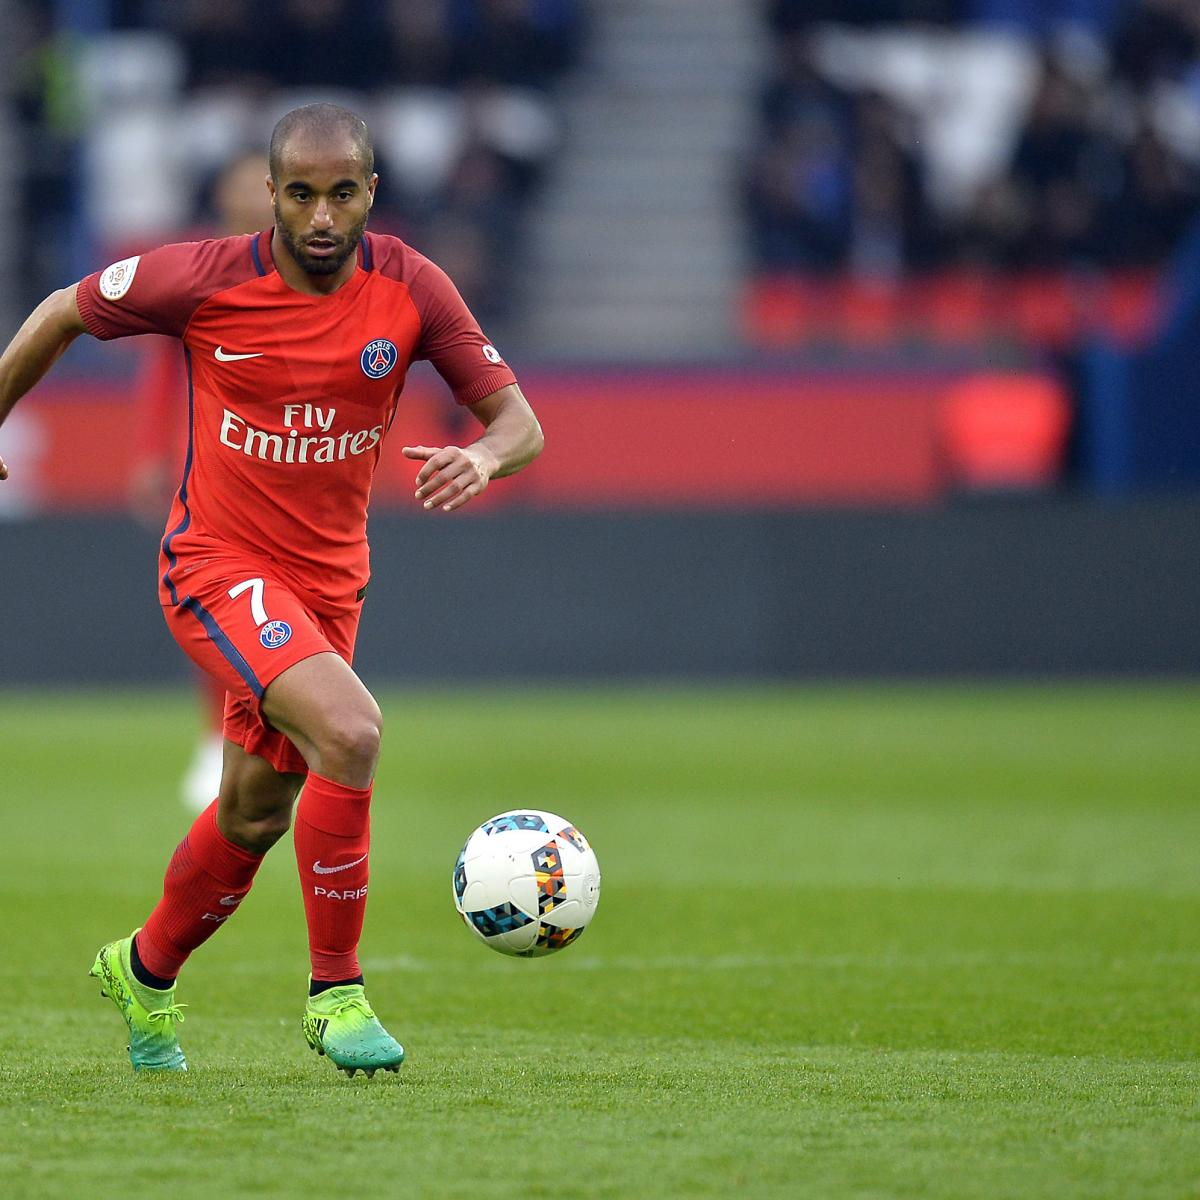 Salario Lucas Moura Psg 2017: PSG Transfer News: Latest Rumours On Lucas Moura And